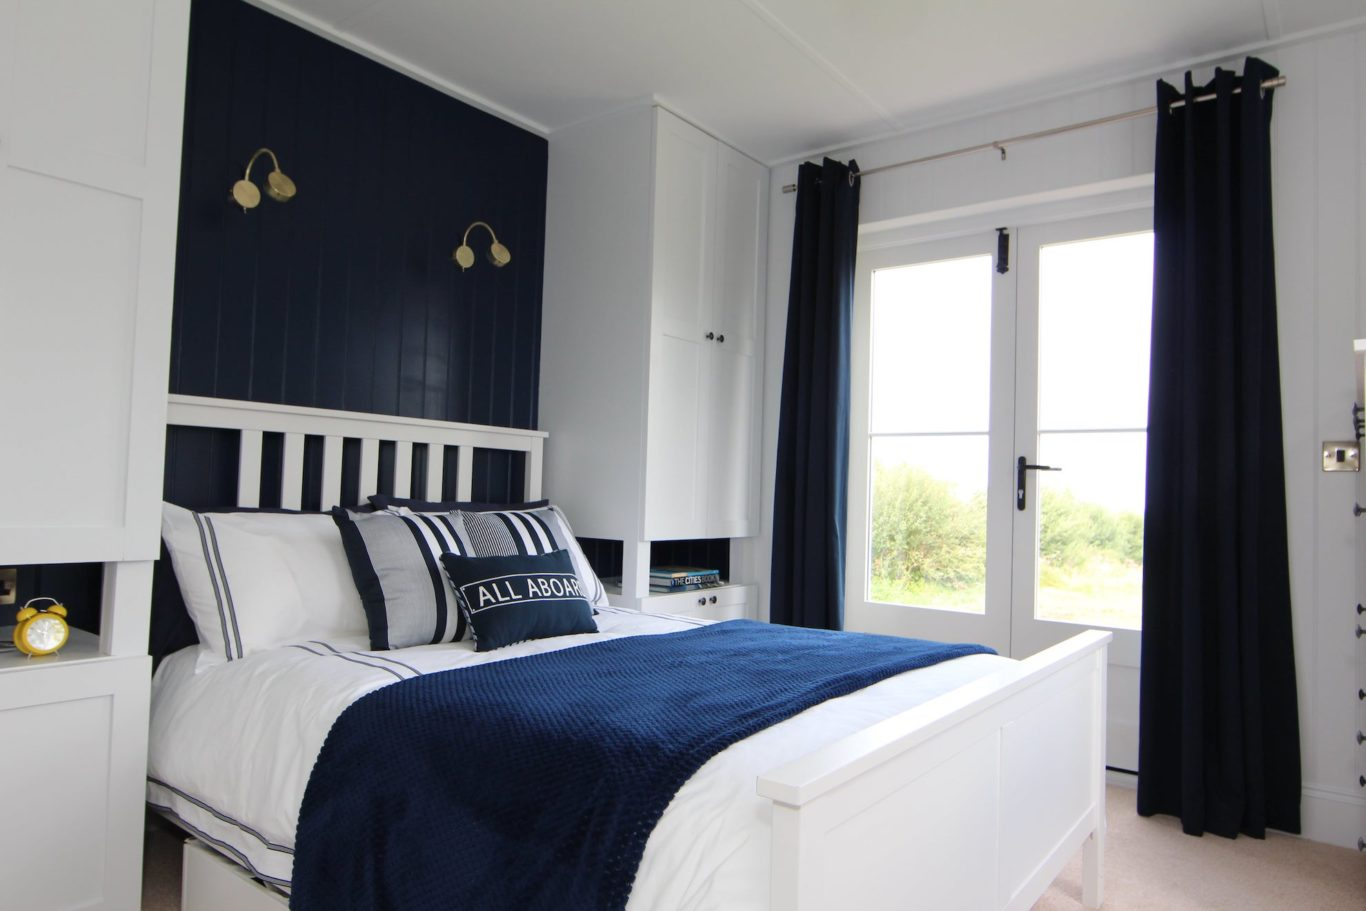 One Bedroom Modular Home The Wee House Company